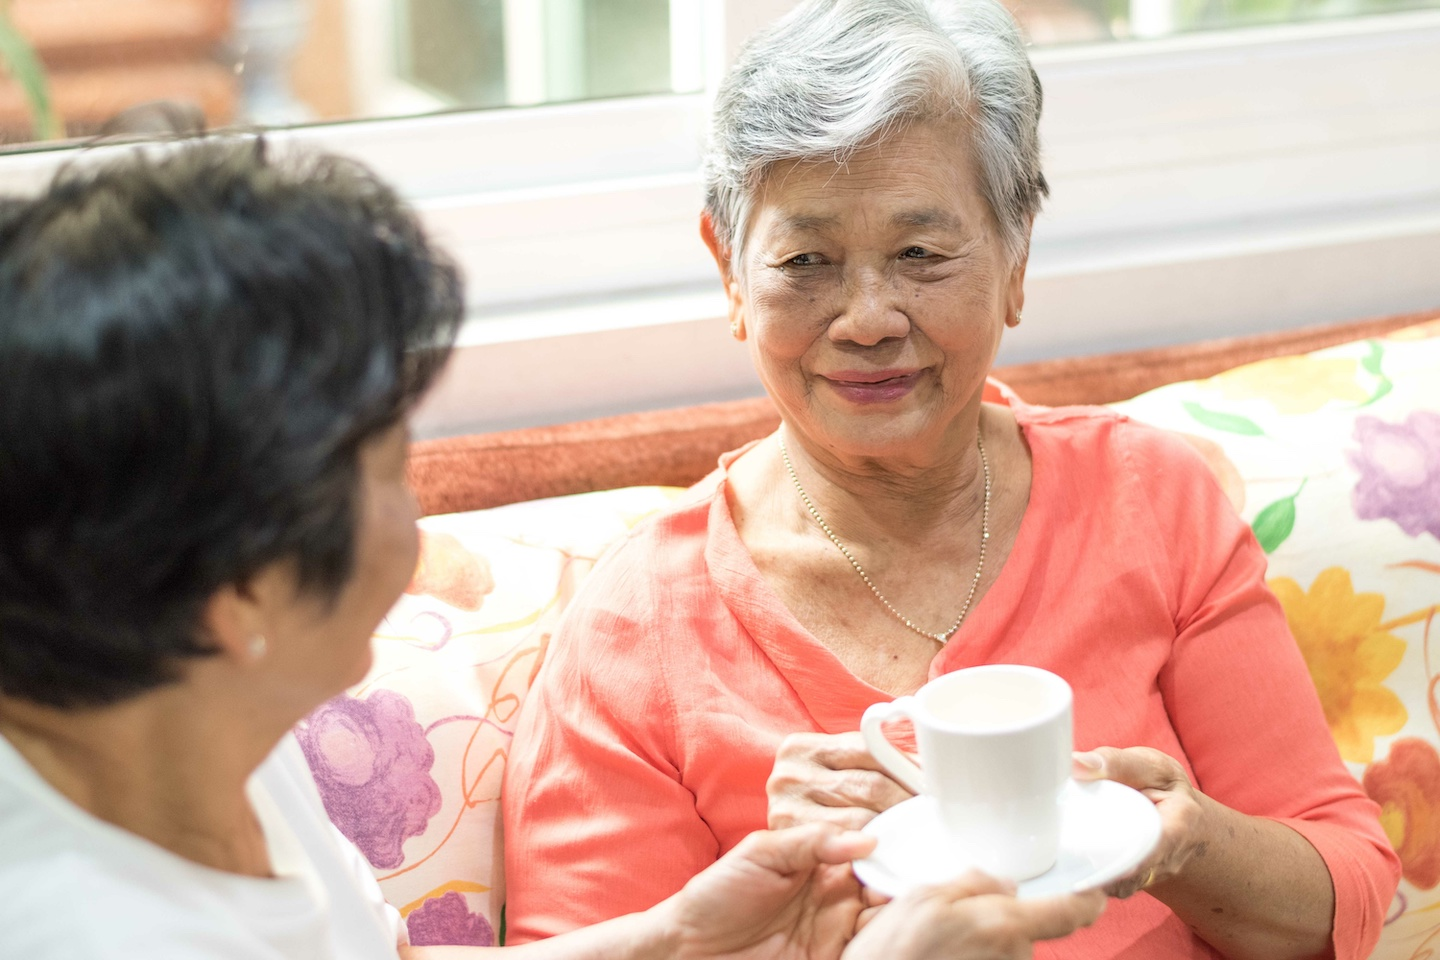 Happy senior freindship society concept. Portrait of Asian female older ageing women smiling with happiness serving hot tea taking care each other at home,nursing home, or wellbeing county